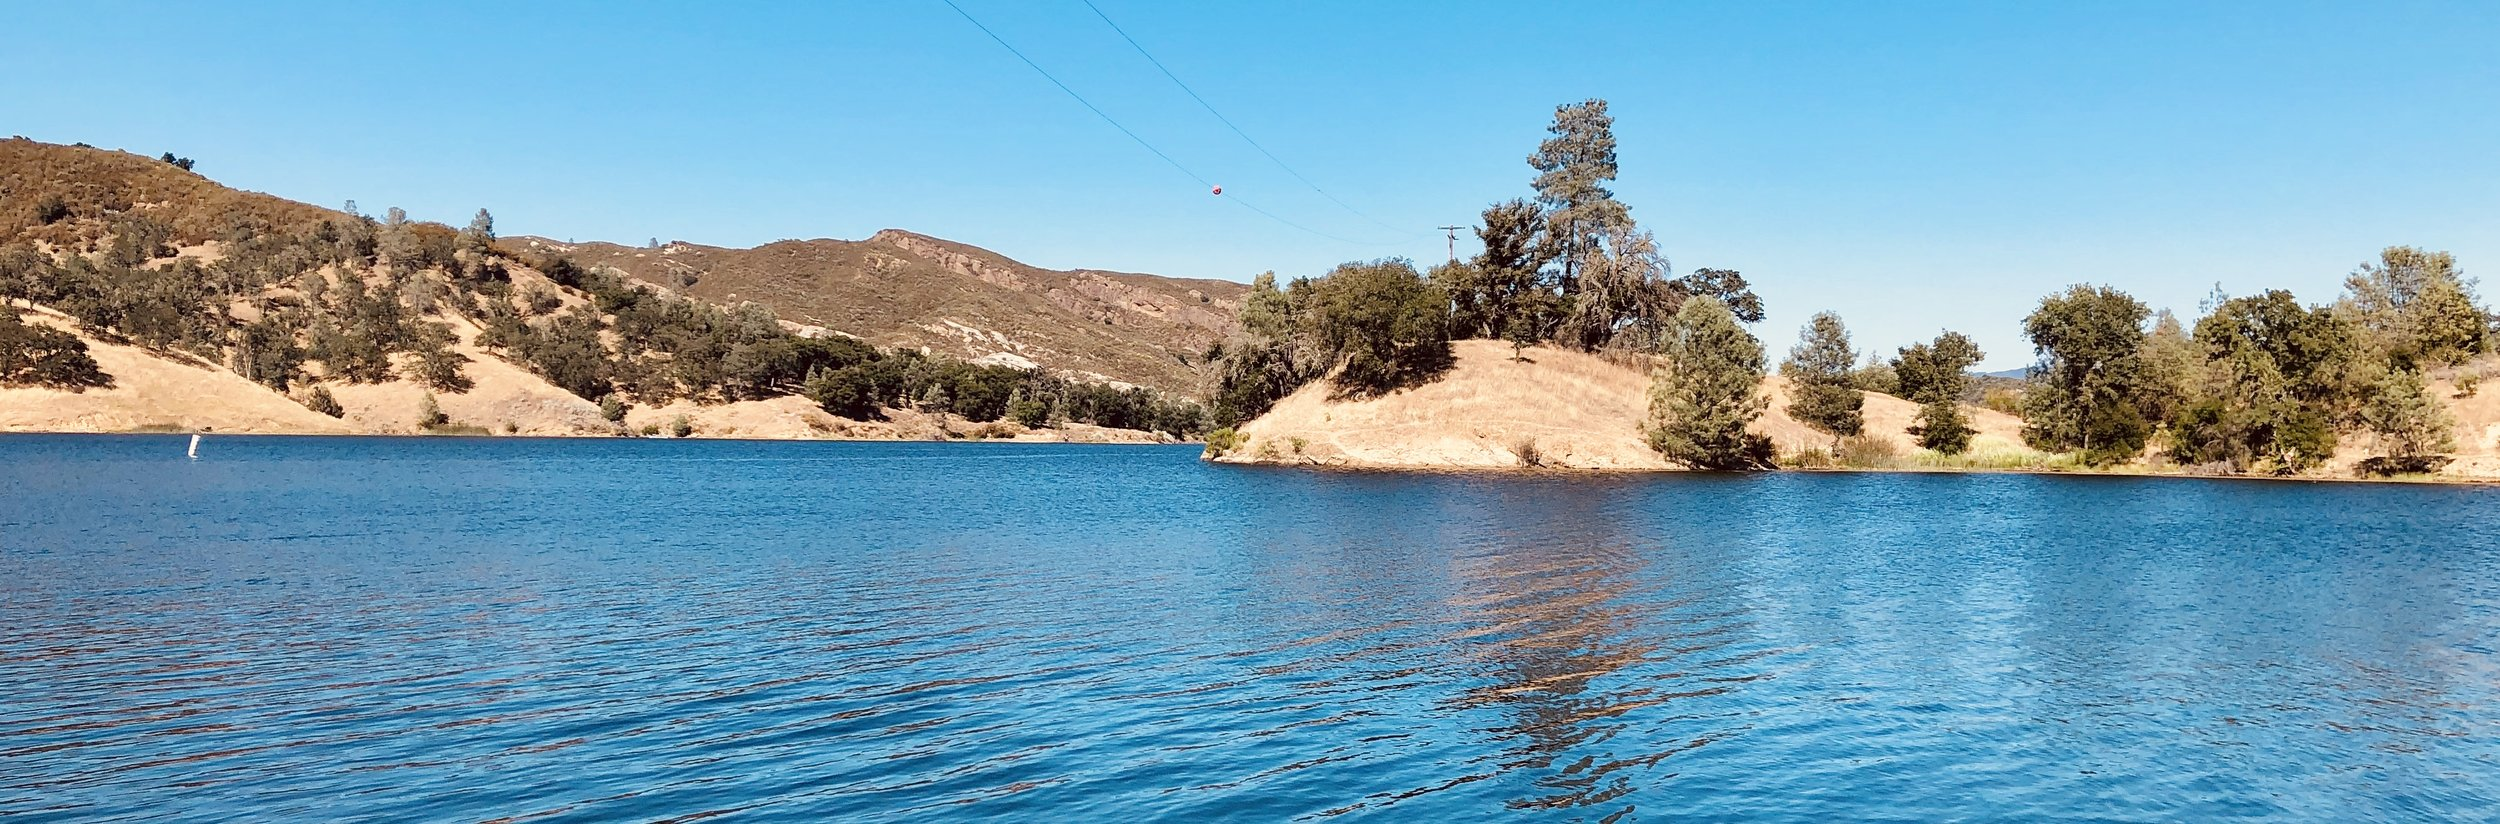 Santa Margarita Lake, with water that looks so refreshing you just want to jump in it…. But you can't. It's the drinking water reservoir for the city of San Luis Obispo. Such a tease.